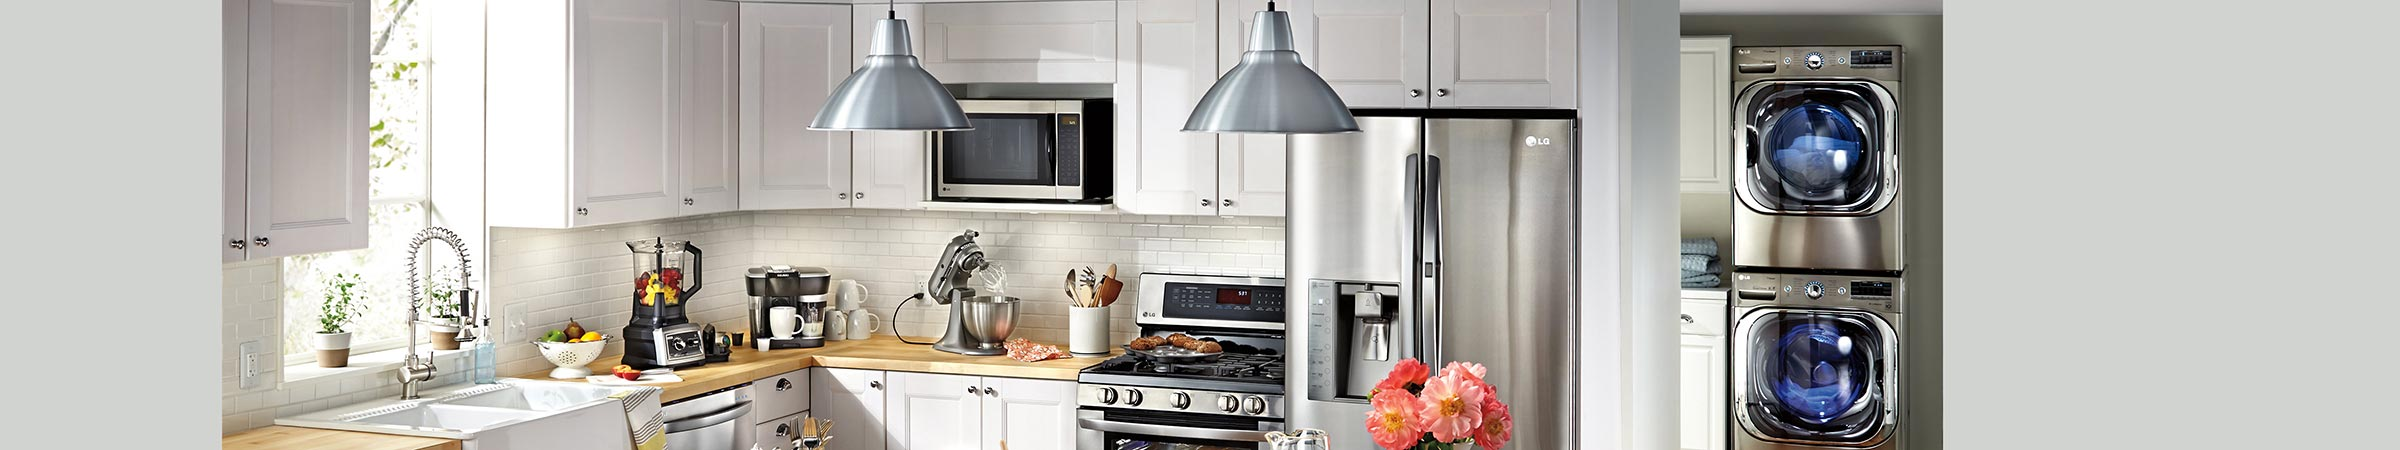 Kitchen Appliance Packages Canada Lg Appliance Options Lg Appliances Best Buy